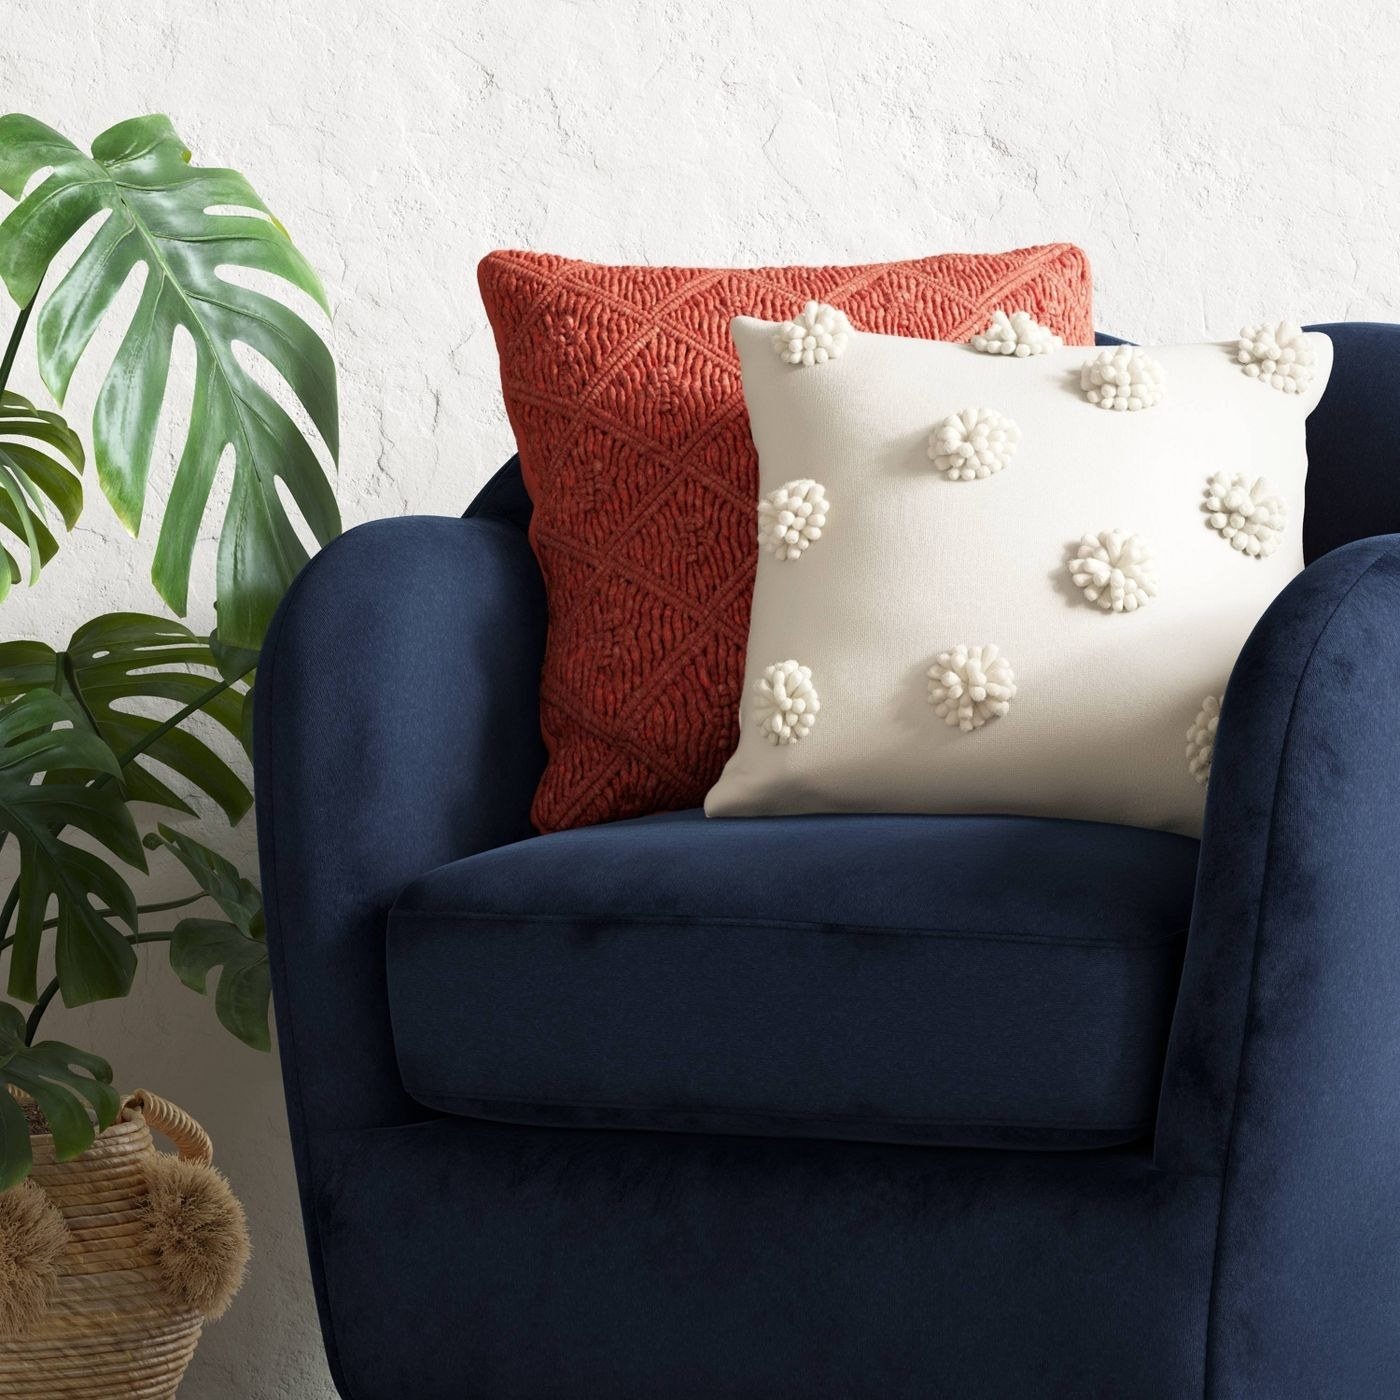 Pom-pom throw pillow on couch